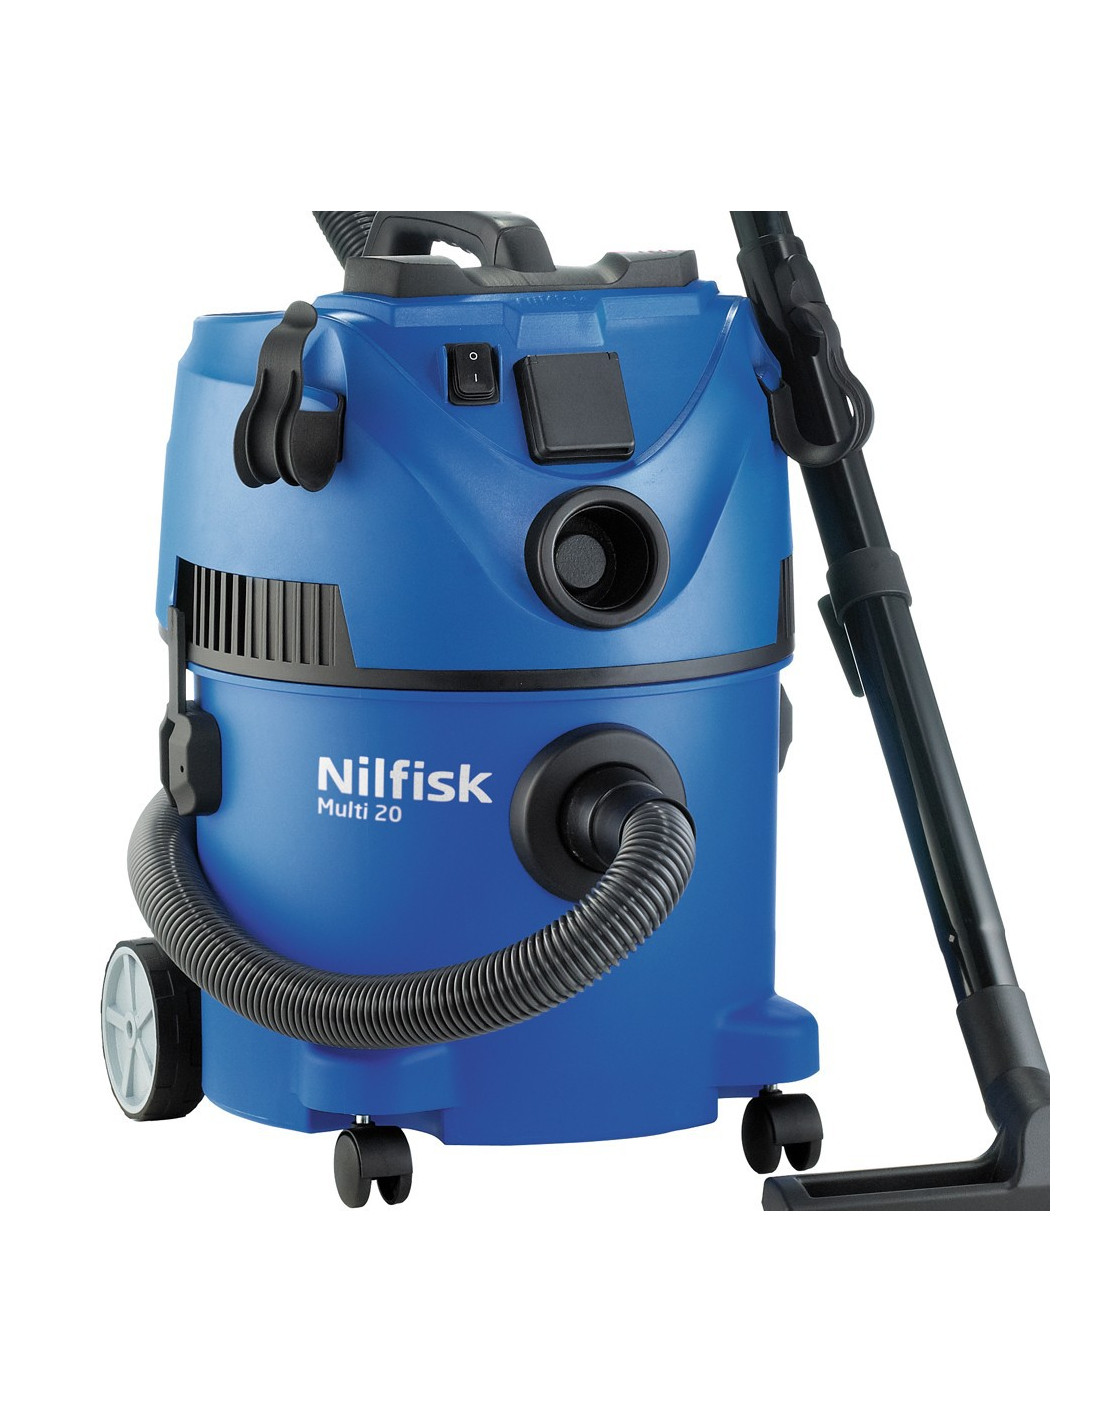 nilfisk multi 20t aspirateur 1400w hyper brico. Black Bedroom Furniture Sets. Home Design Ideas